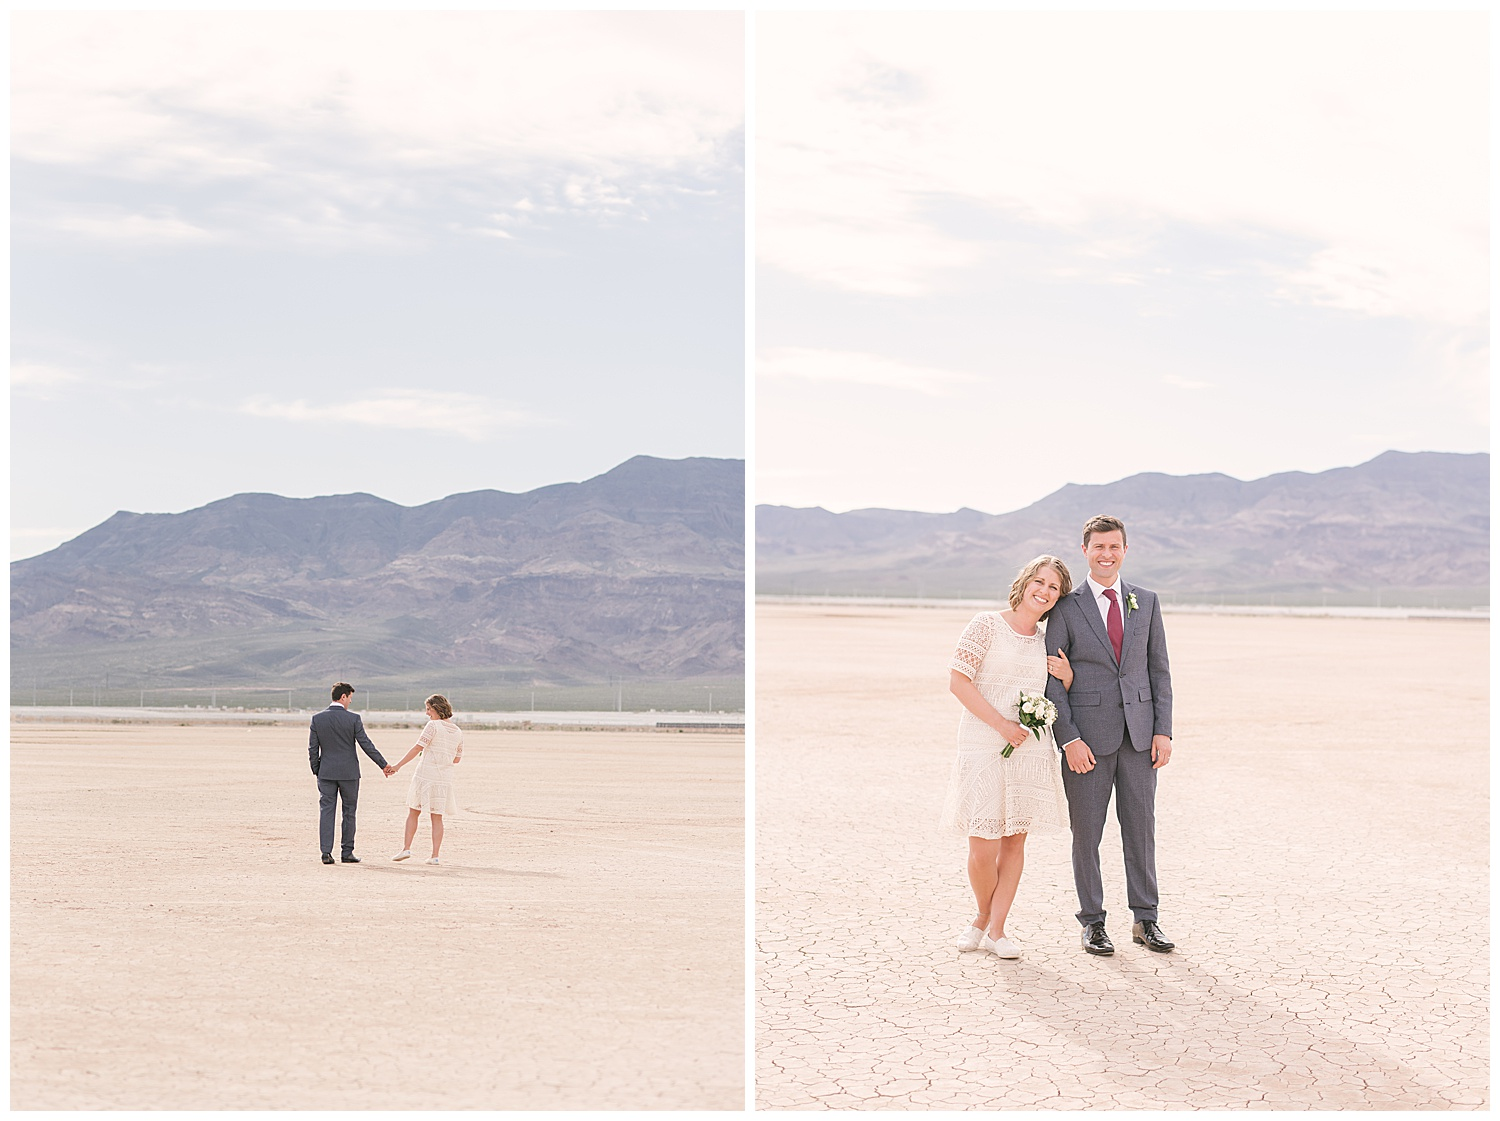 dry-lake-bed-las-vegas-elopement-photographer-09.jpg